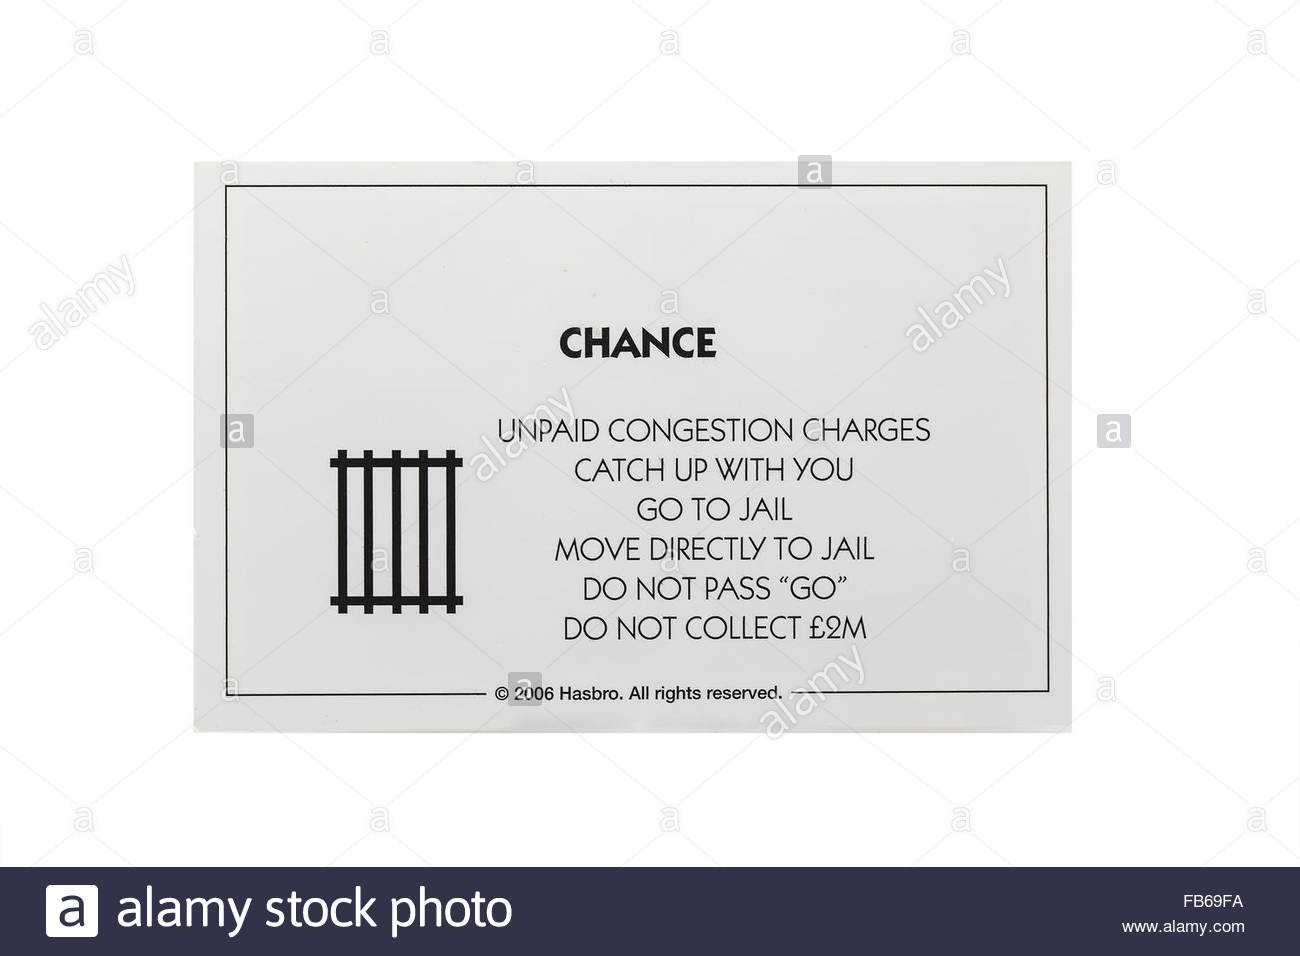 5Ba52 Monopoly Chance Card Template | Wiring Library Pertaining To Chance Card Template